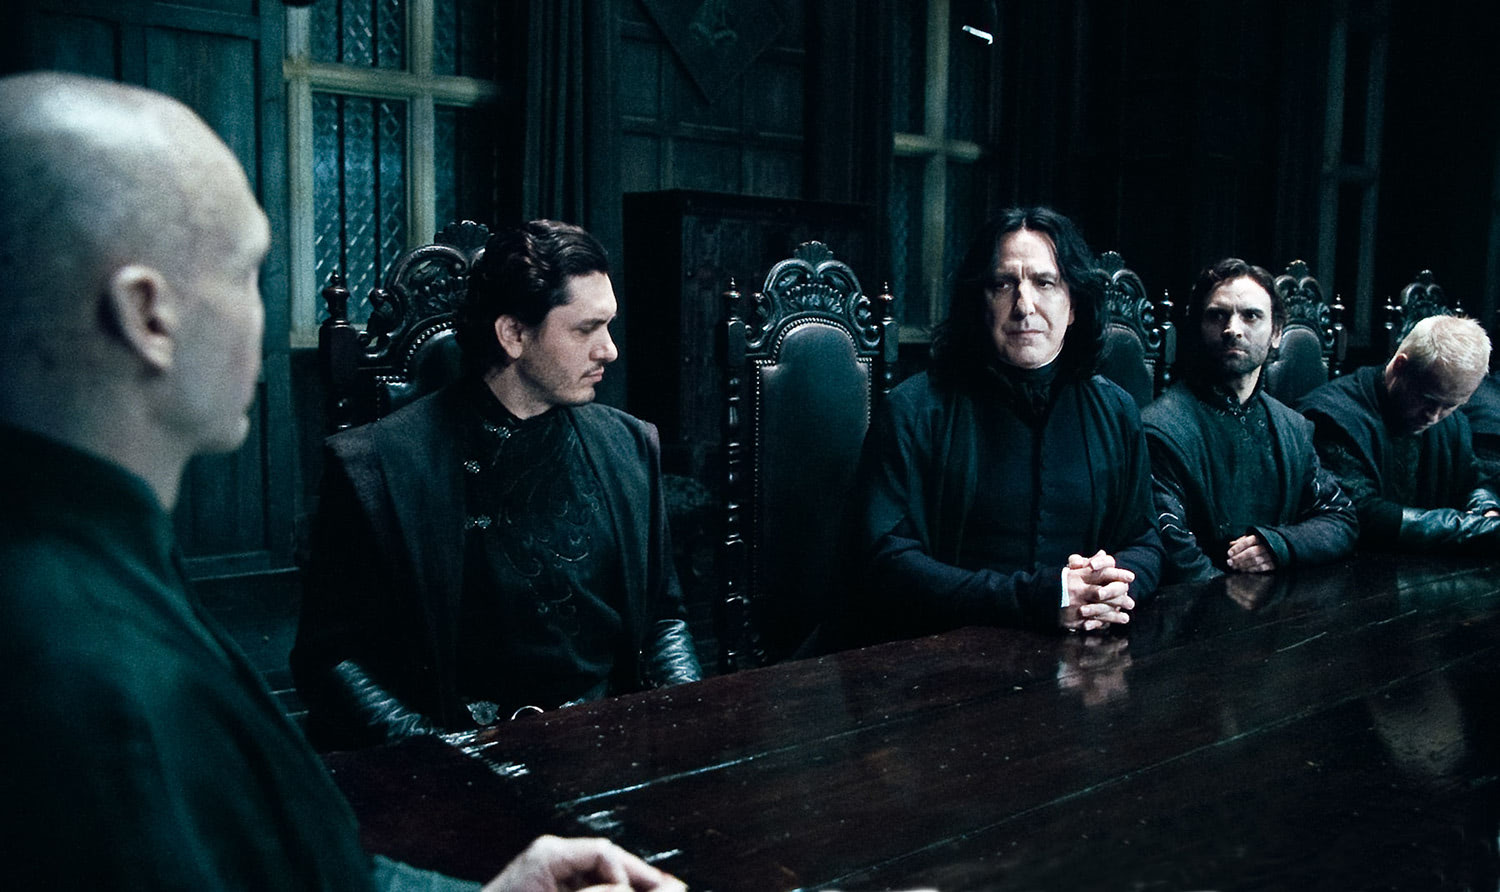 Snape and Voldemort speak at Malfoy Manor